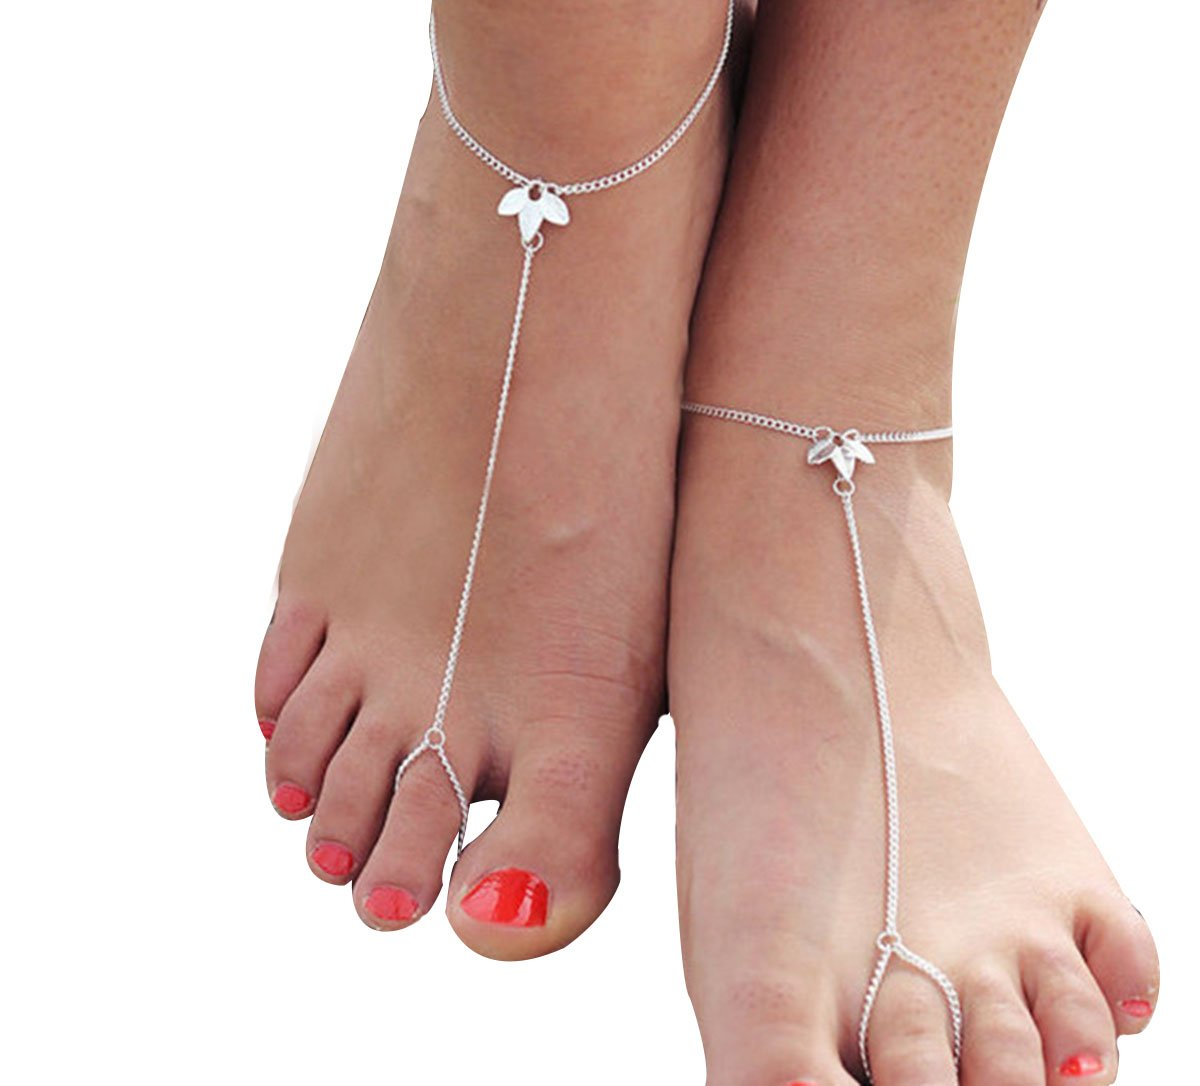 Kiss Queen Womens Barefoot Sandals Elegant Orchid Chain Anklets Bracelet